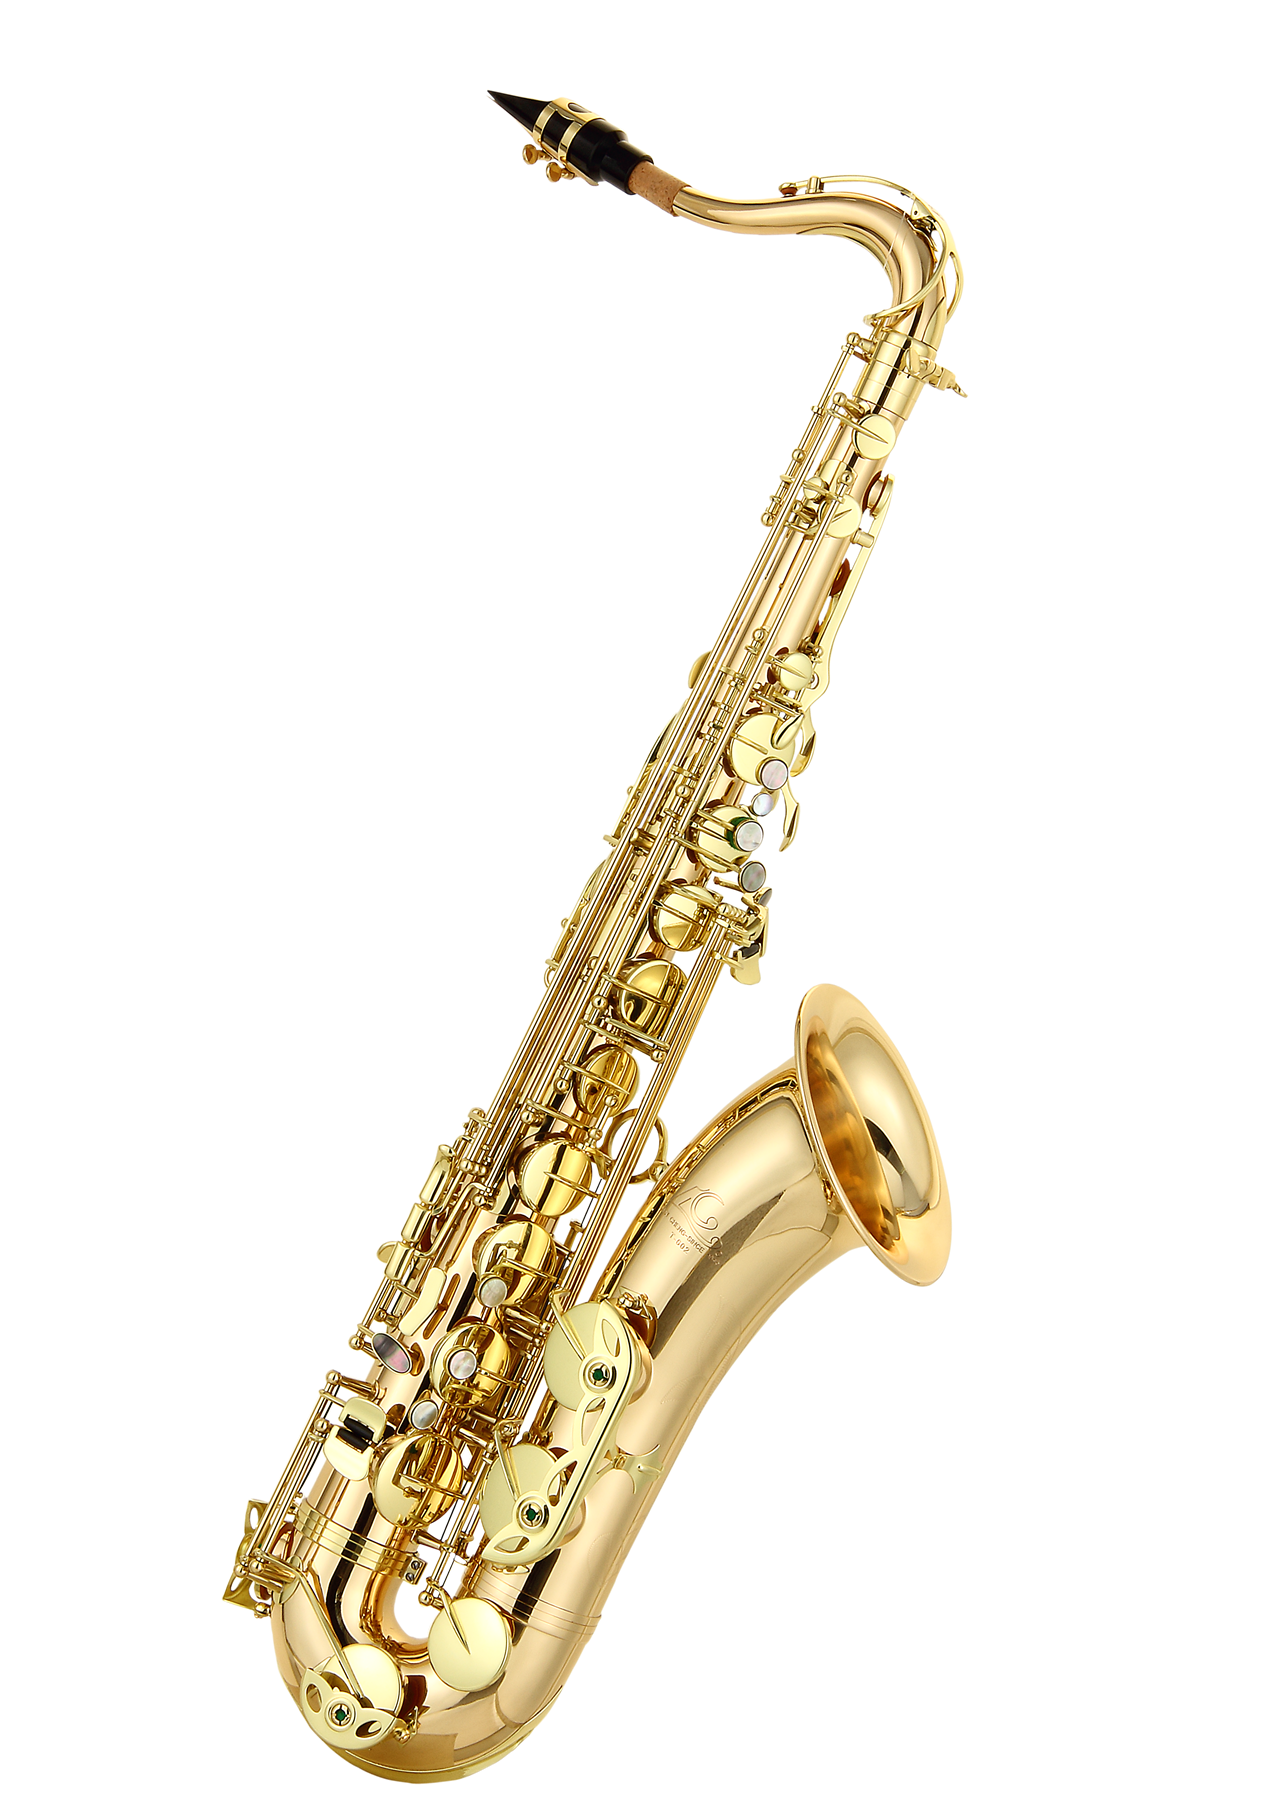 Saxophone Png Clipart PNG Image - Free PNG Saxophone